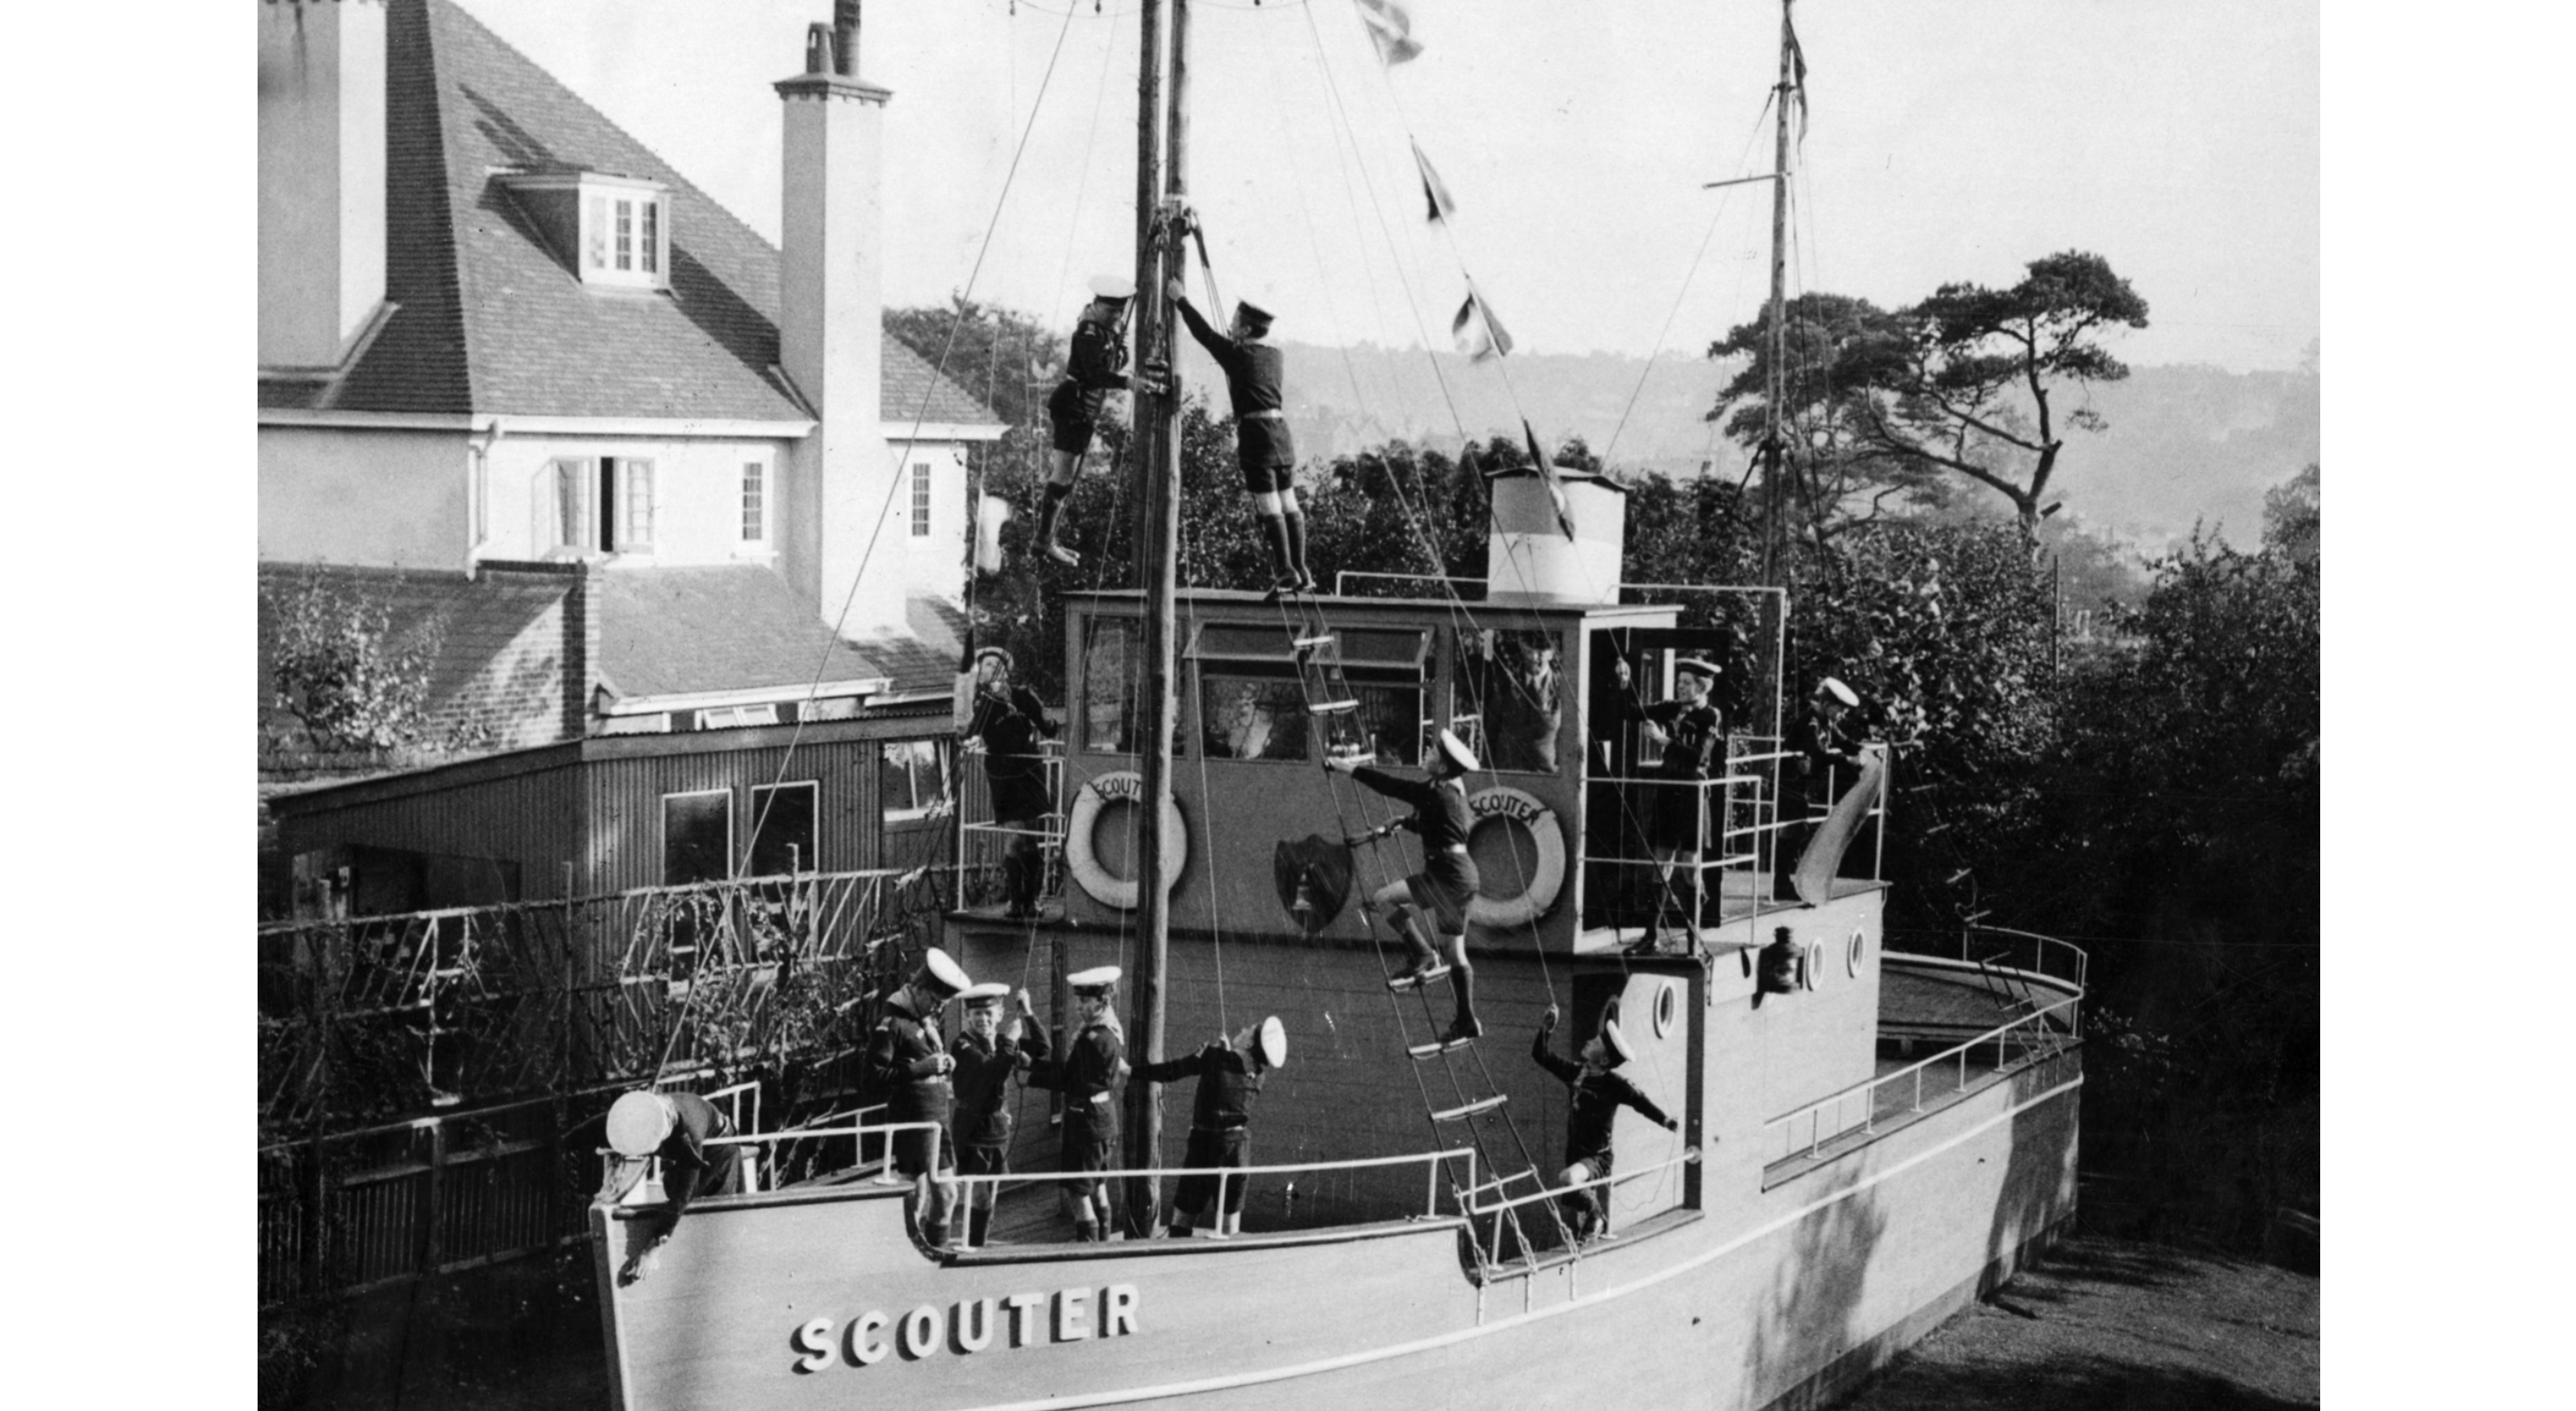 vintage photo of a steampship.